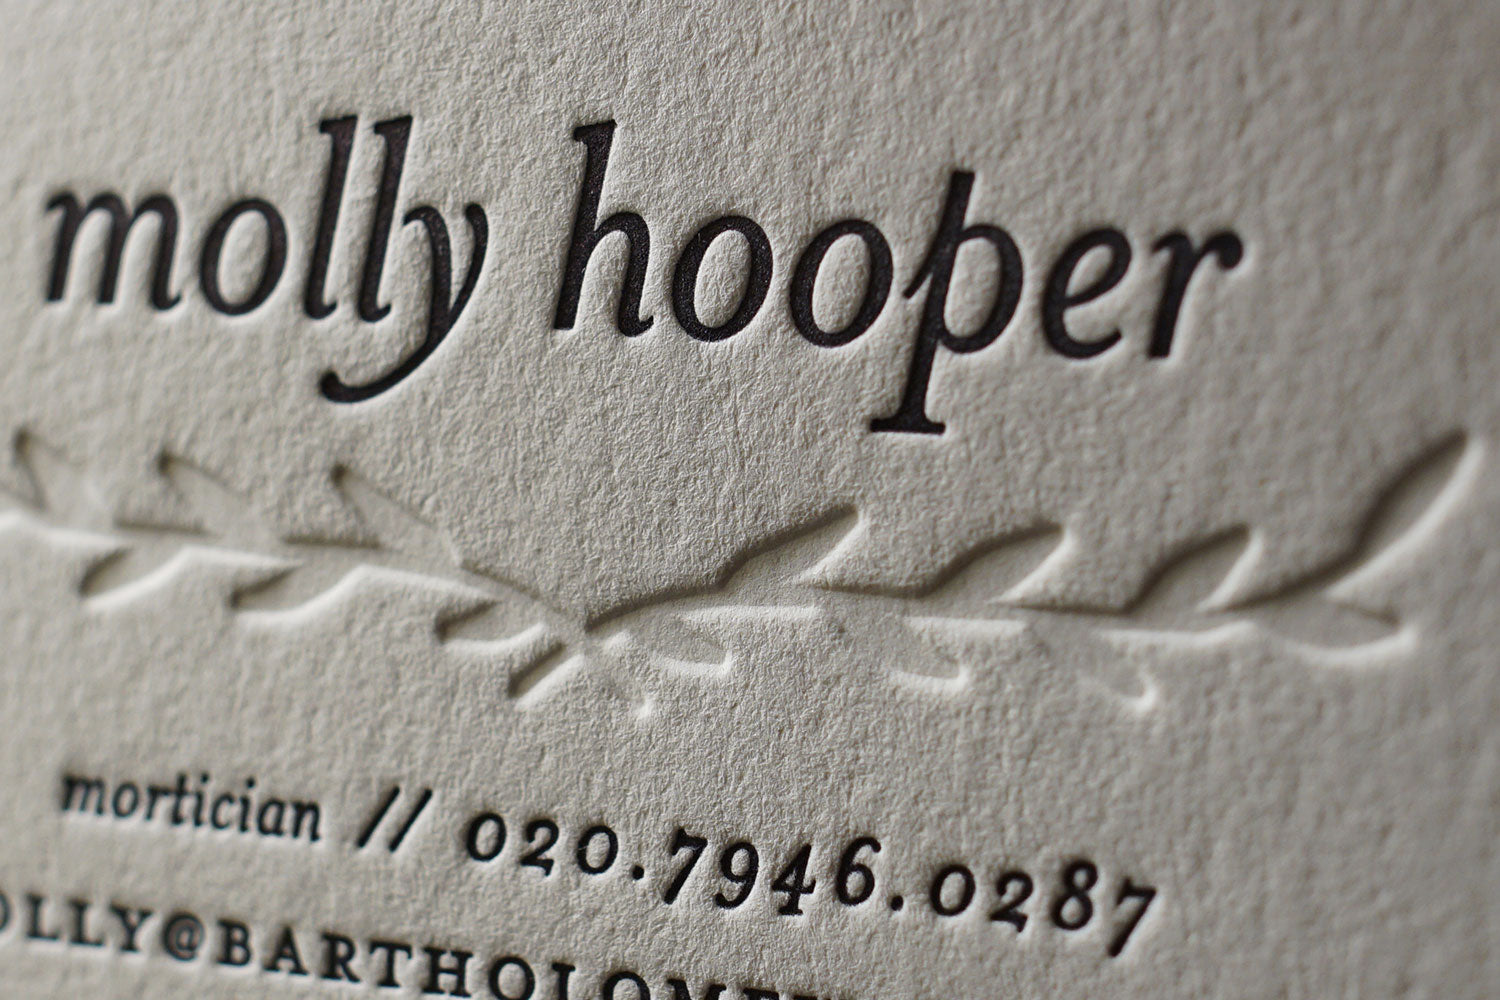 A close up example of a letterpress printed calling card